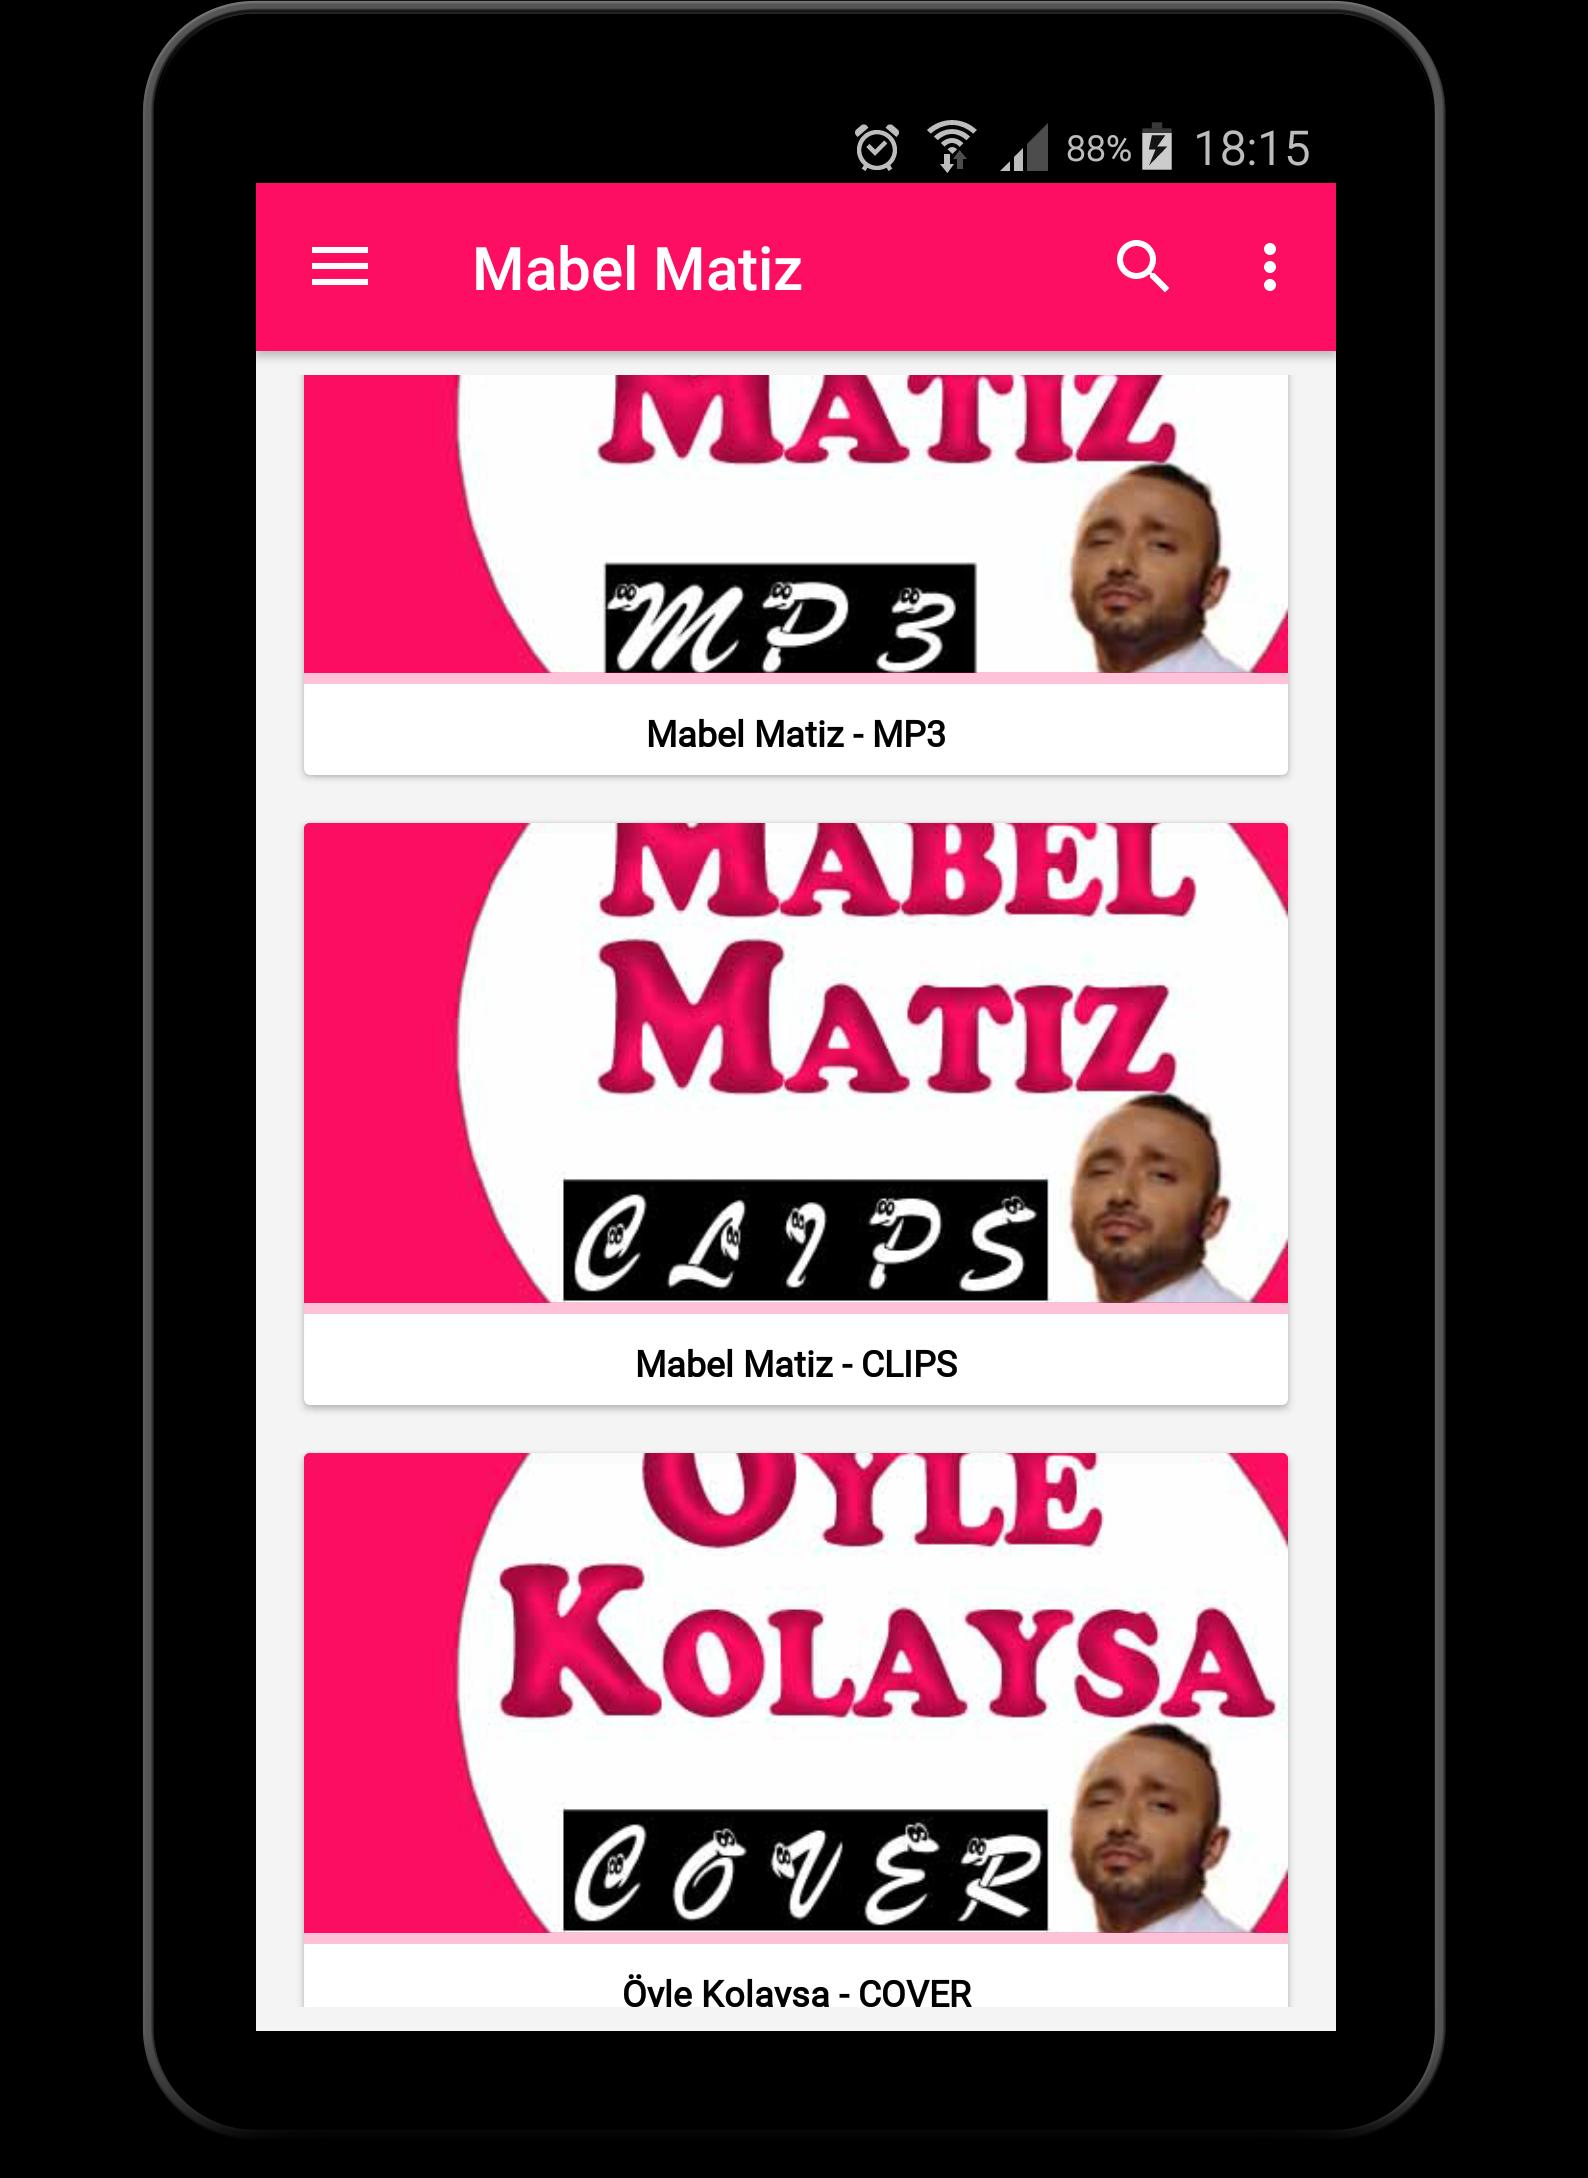 öyle kolaysa cover mabel matiz mp3 screenshot 4